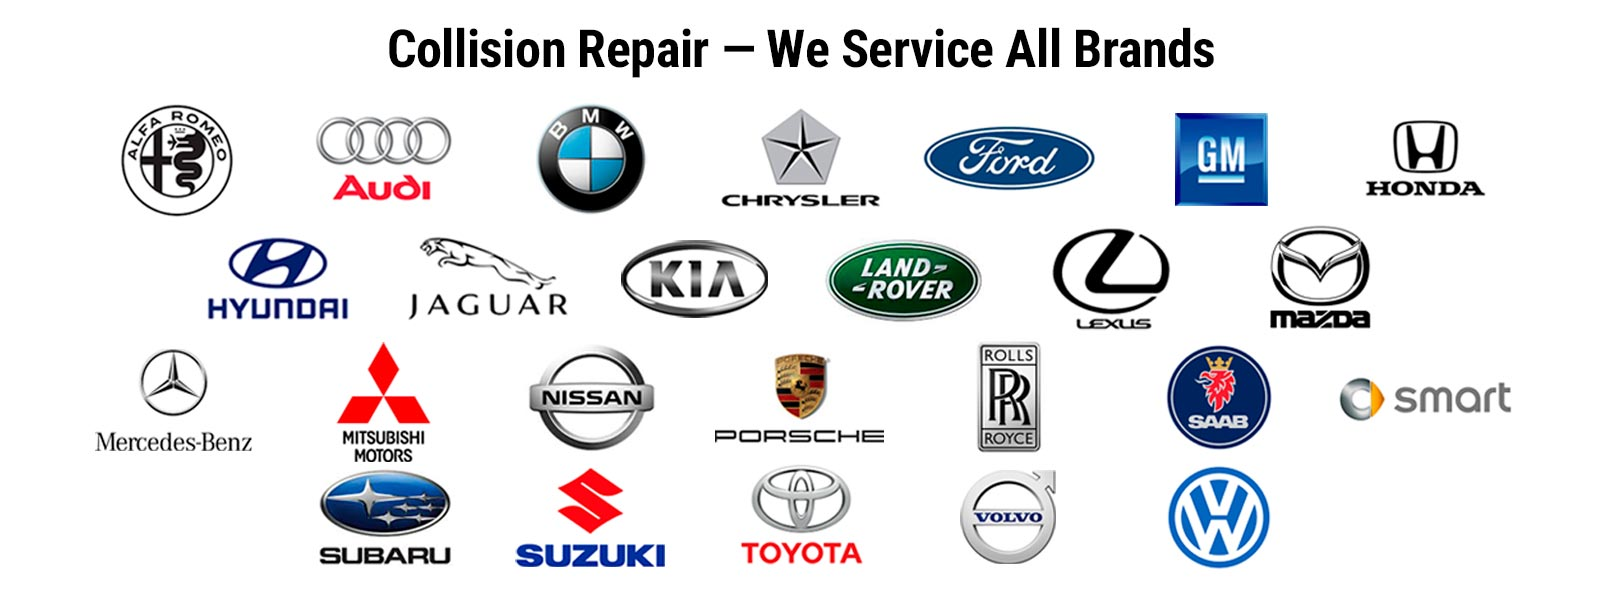 Collision Repair - We Service All Brands